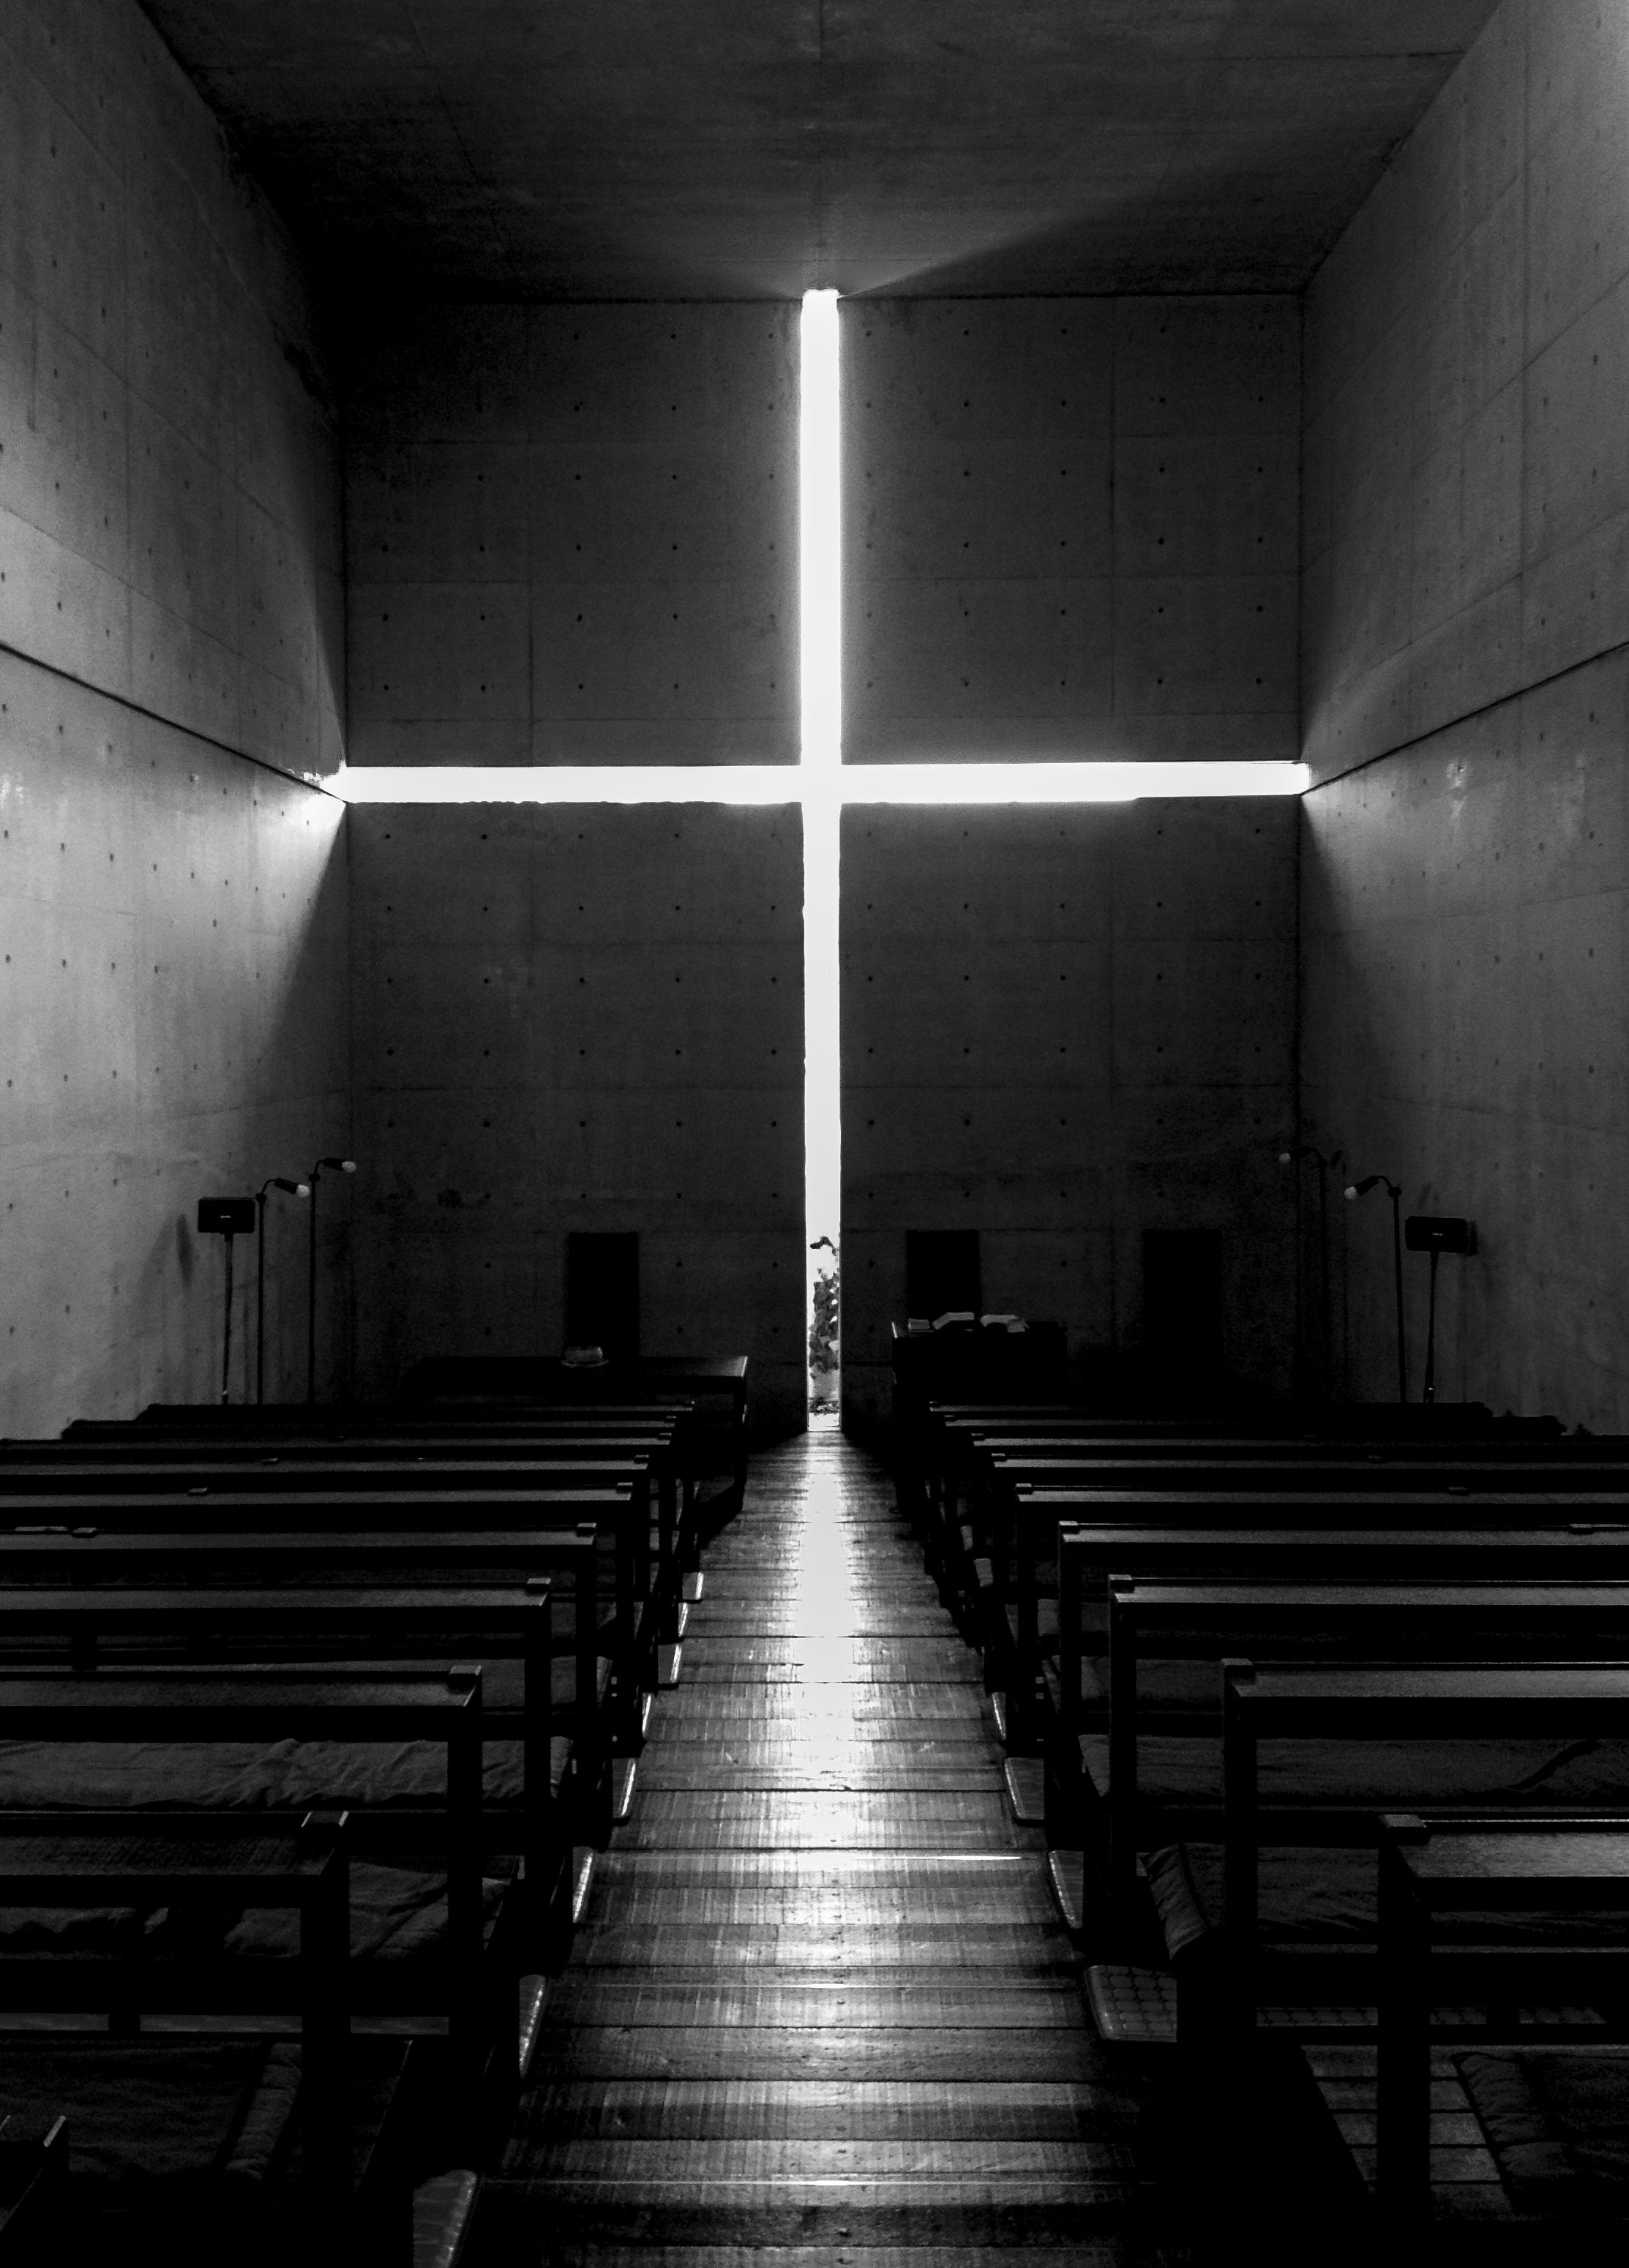 church of light photography by cassie greentree | S/TUDIO